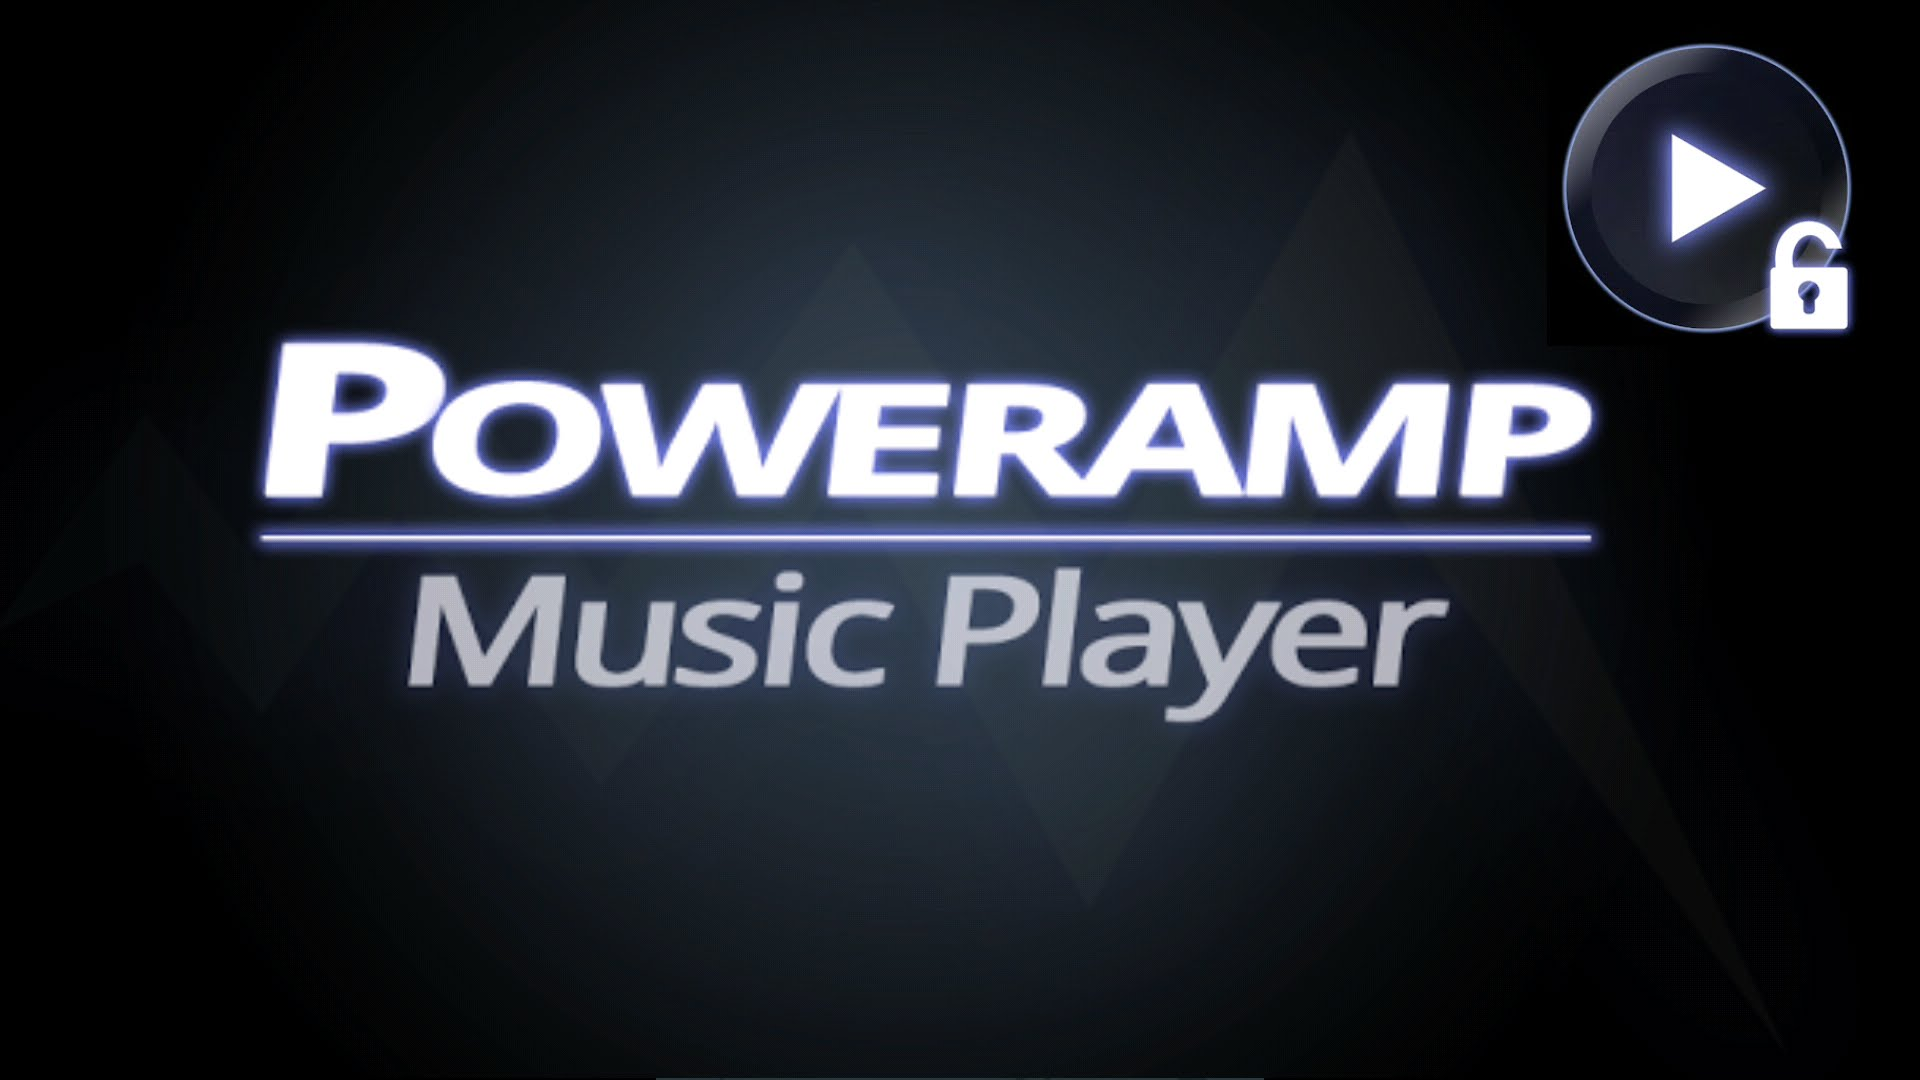 Poweramp Full Version Unlocker App Review